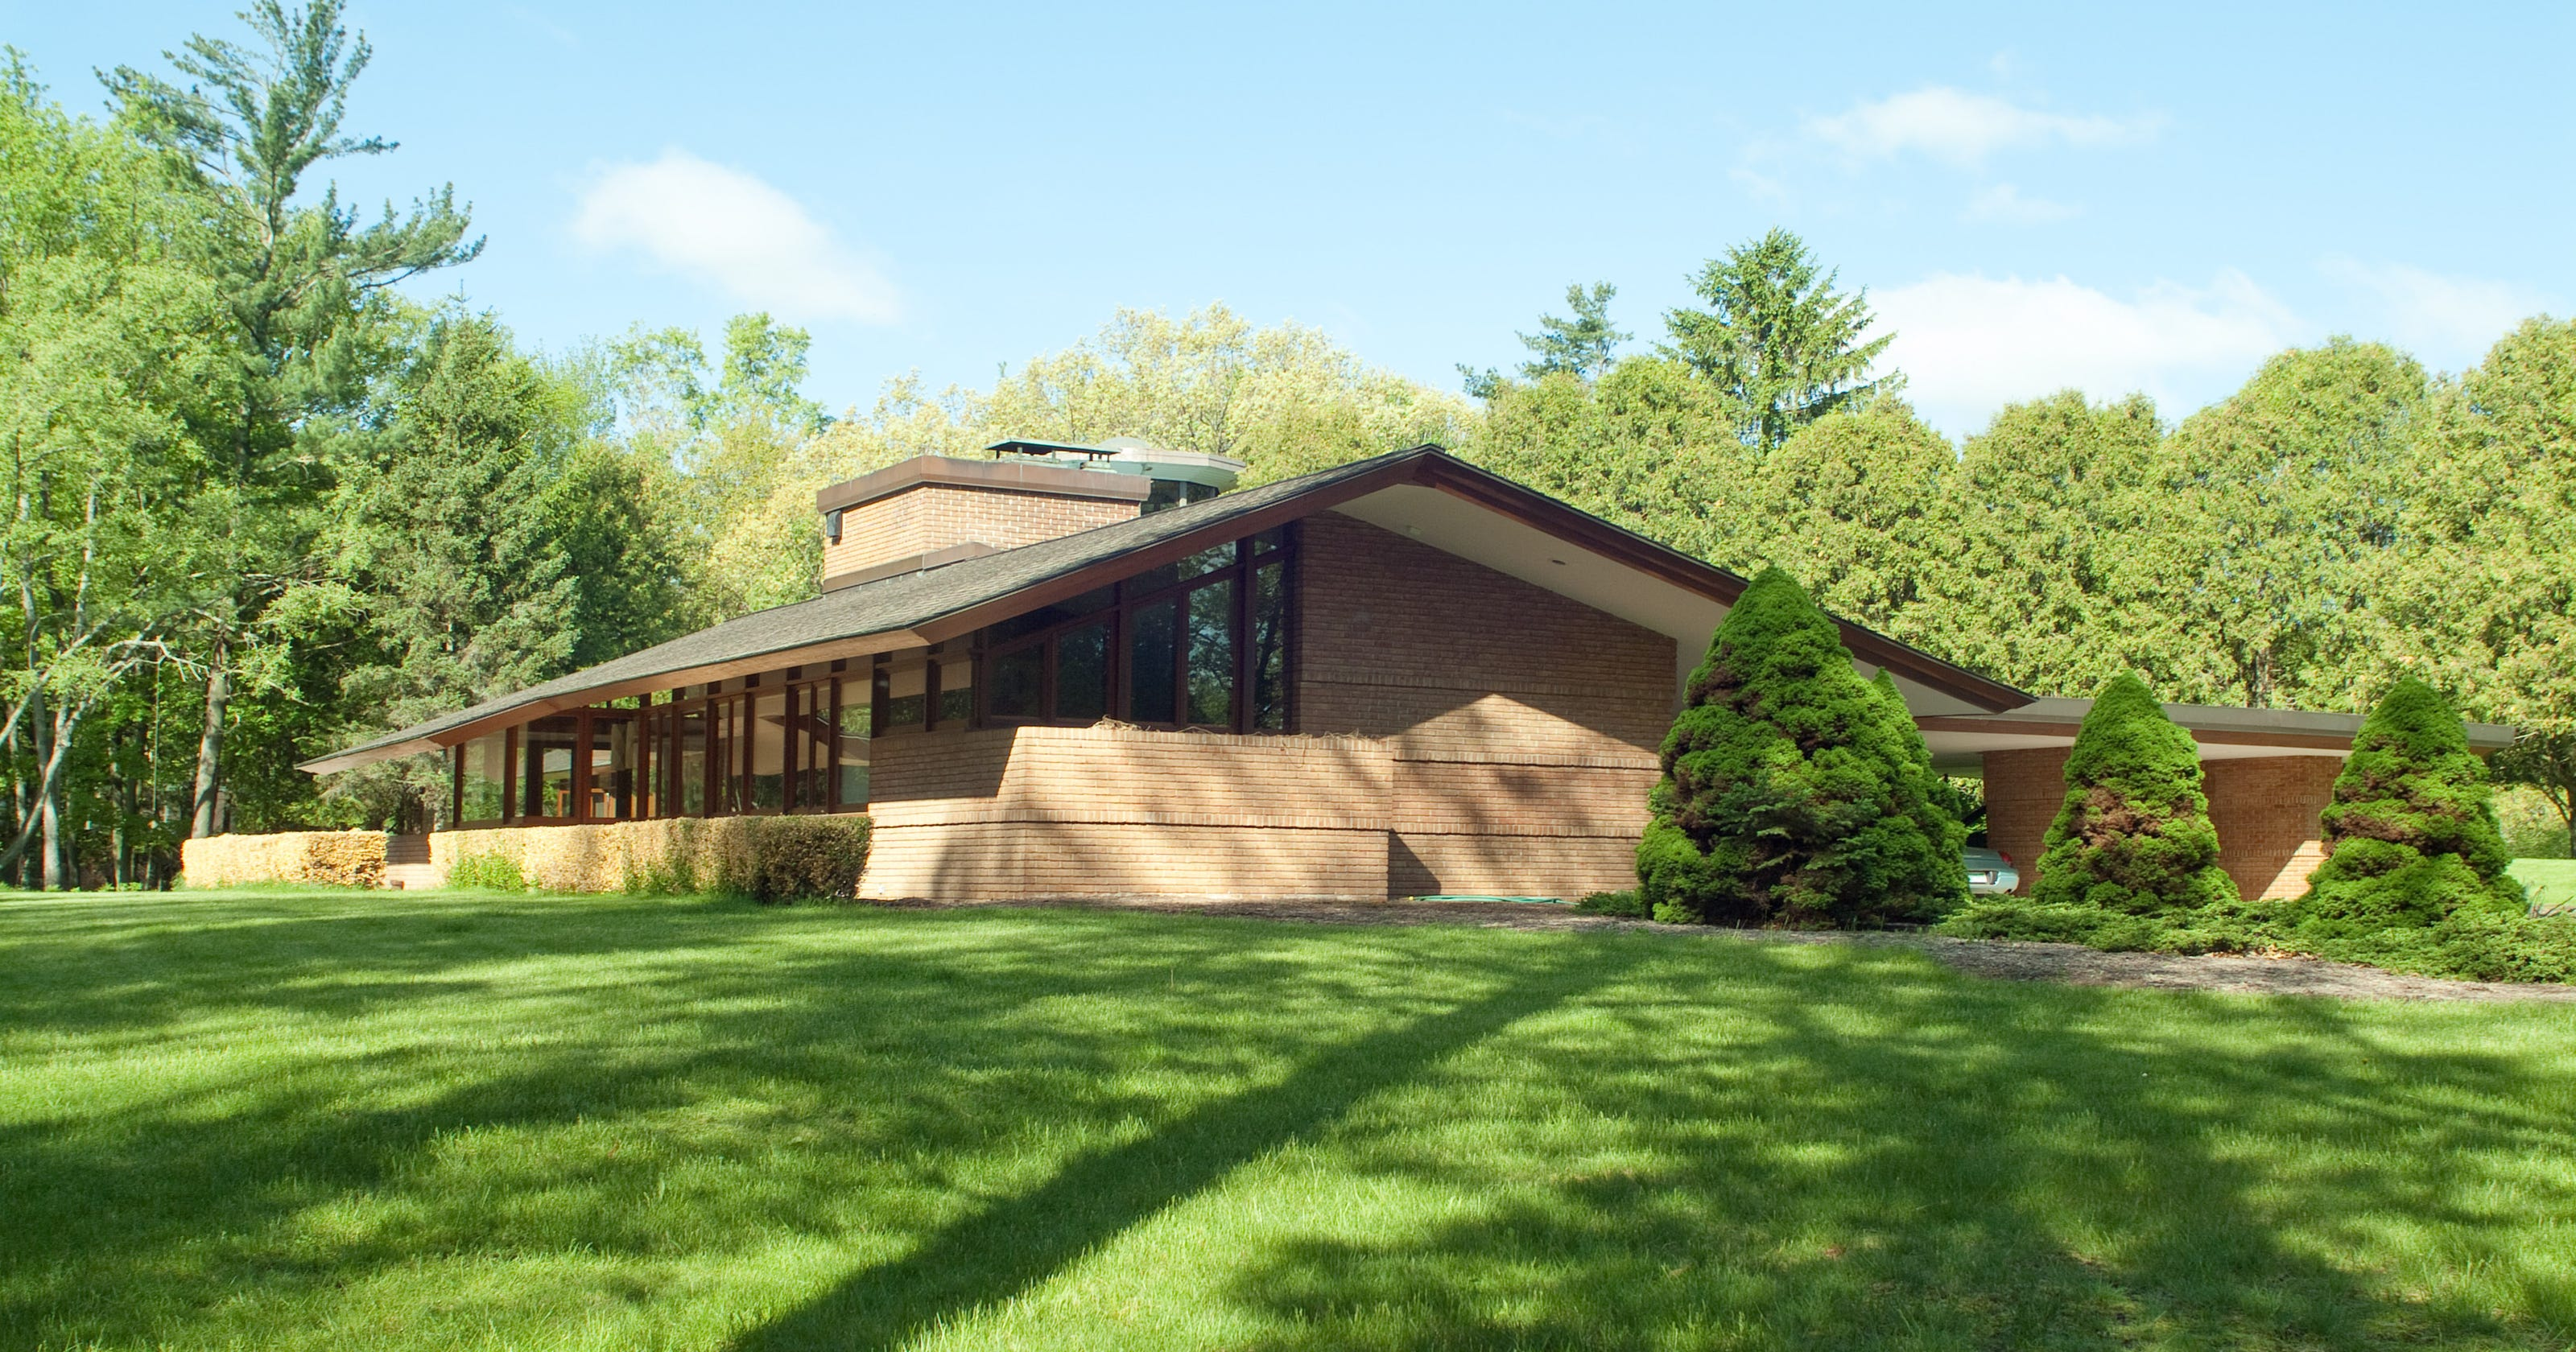 Lloyd Frank Wright Houses architect frank lloyd wright's four okemos designed homes on